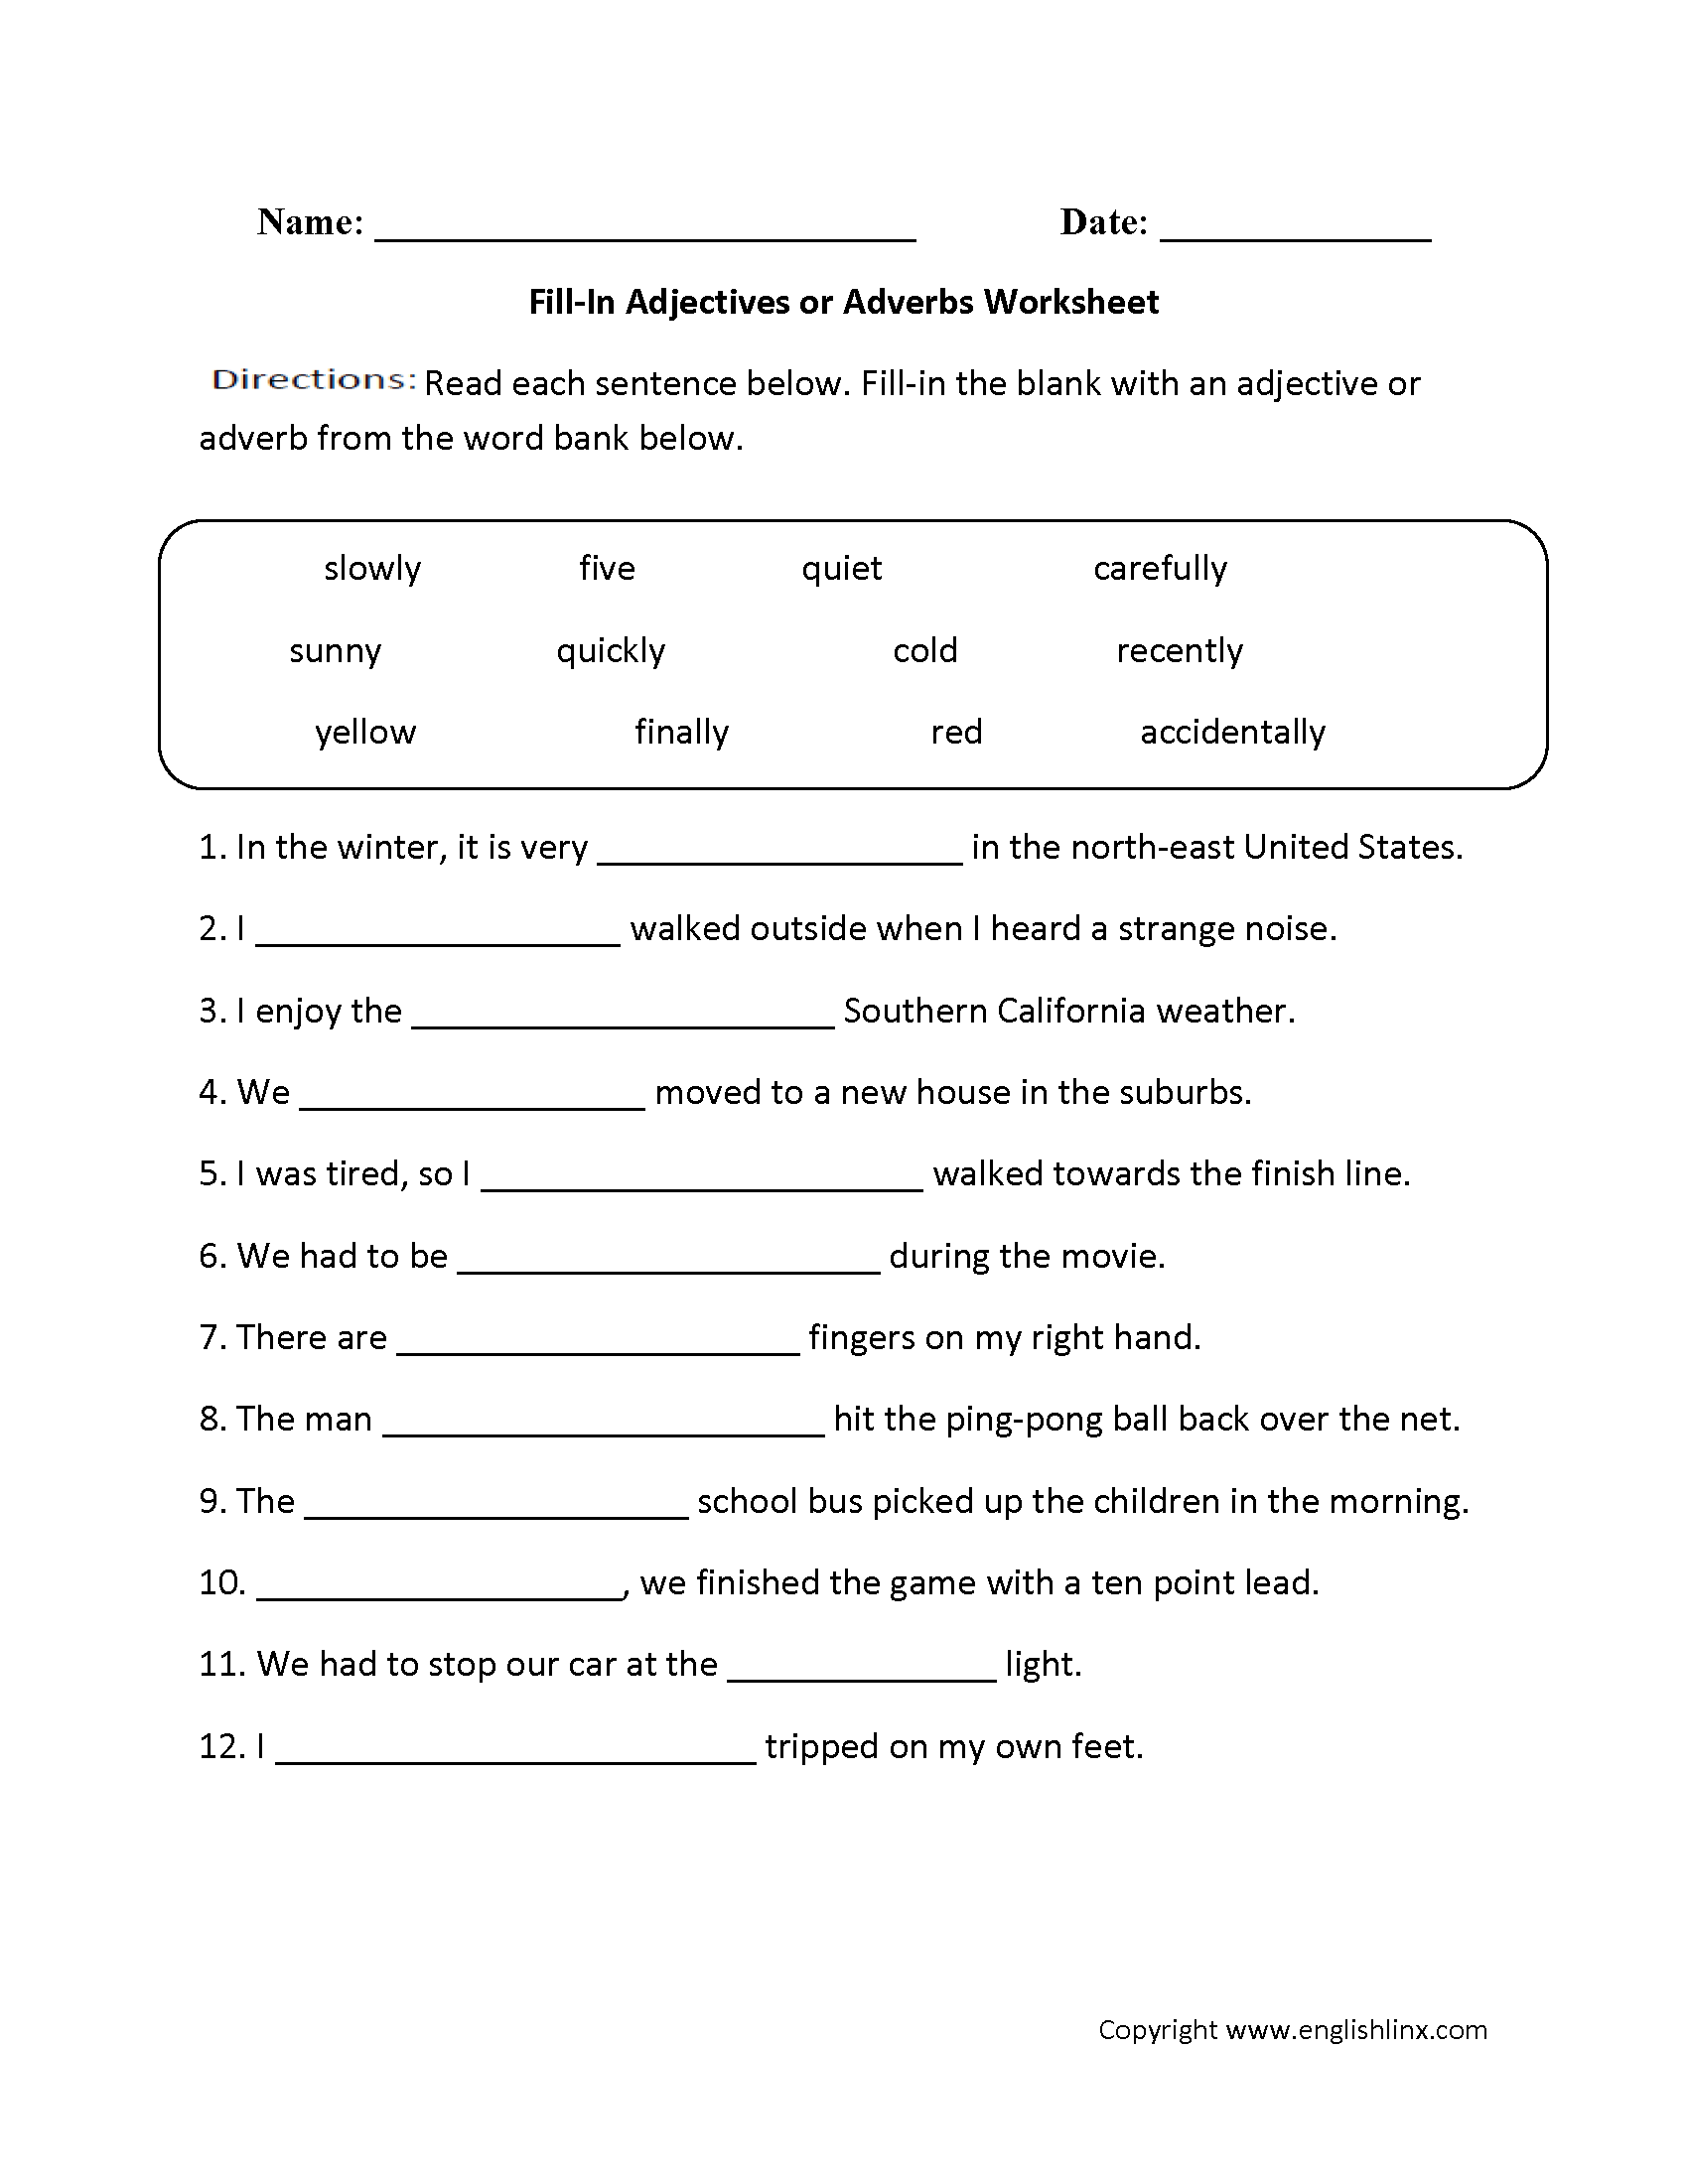 Free Worksheet Fill In The Blank Worksheets adjectives or adverbs worksheets fill in worksheet